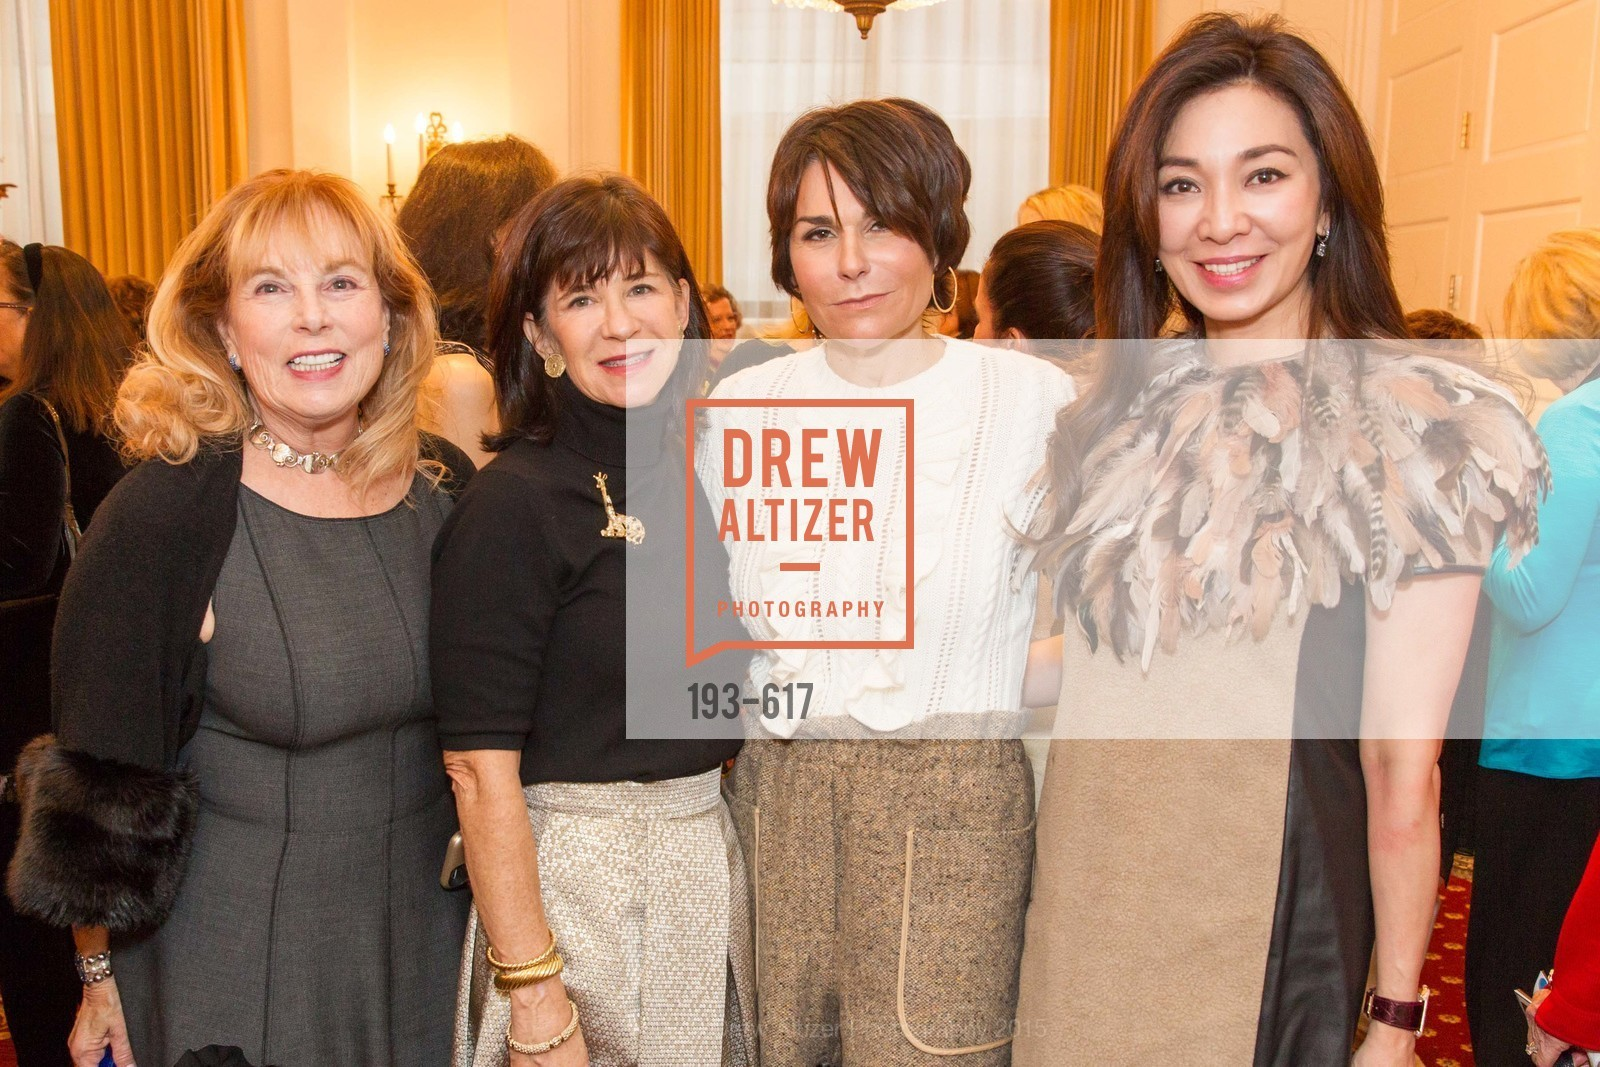 Marty Liao, Pam McBain, Debbi DiMaggio, Nathaline Djuhari, Boy's & Girls' Towns of Italy Holiday Luncheon, The Olympic Club. 524 Post Street, December 3rd, 2015,Drew Altizer, Drew Altizer Photography, full-service agency, private events, San Francisco photographer, photographer california